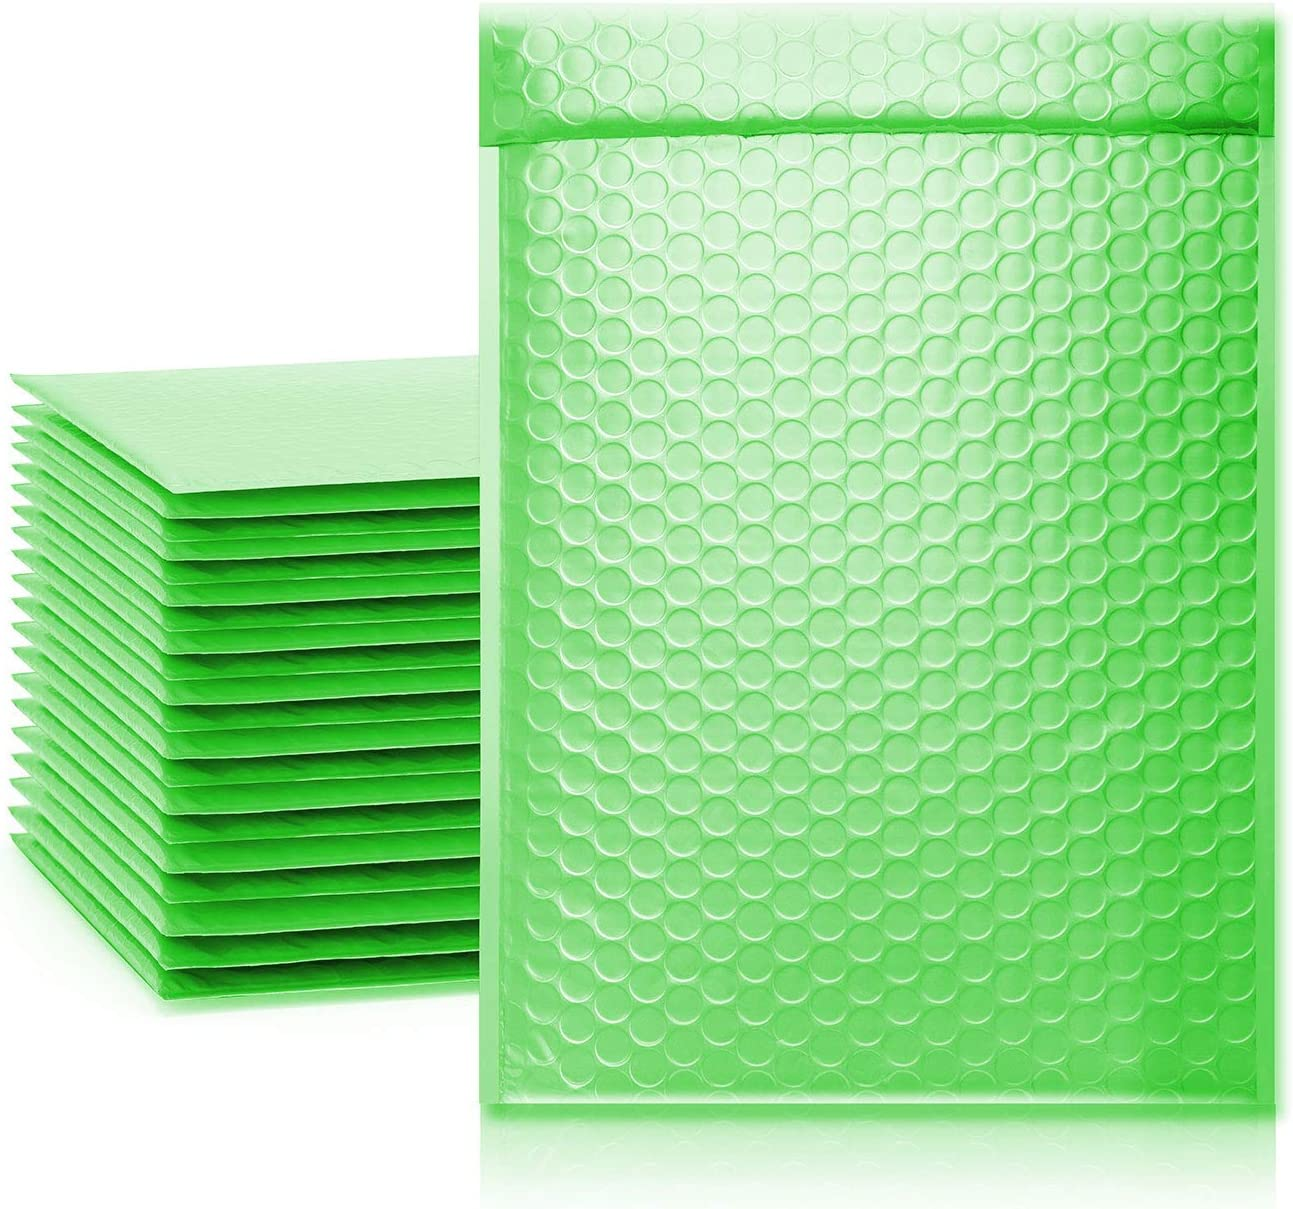 TONESPAC 100 Pack #5 Max 65% OFF 10.5x15 Bubble Poly Envelope 2021new shipping free Mailers Padded